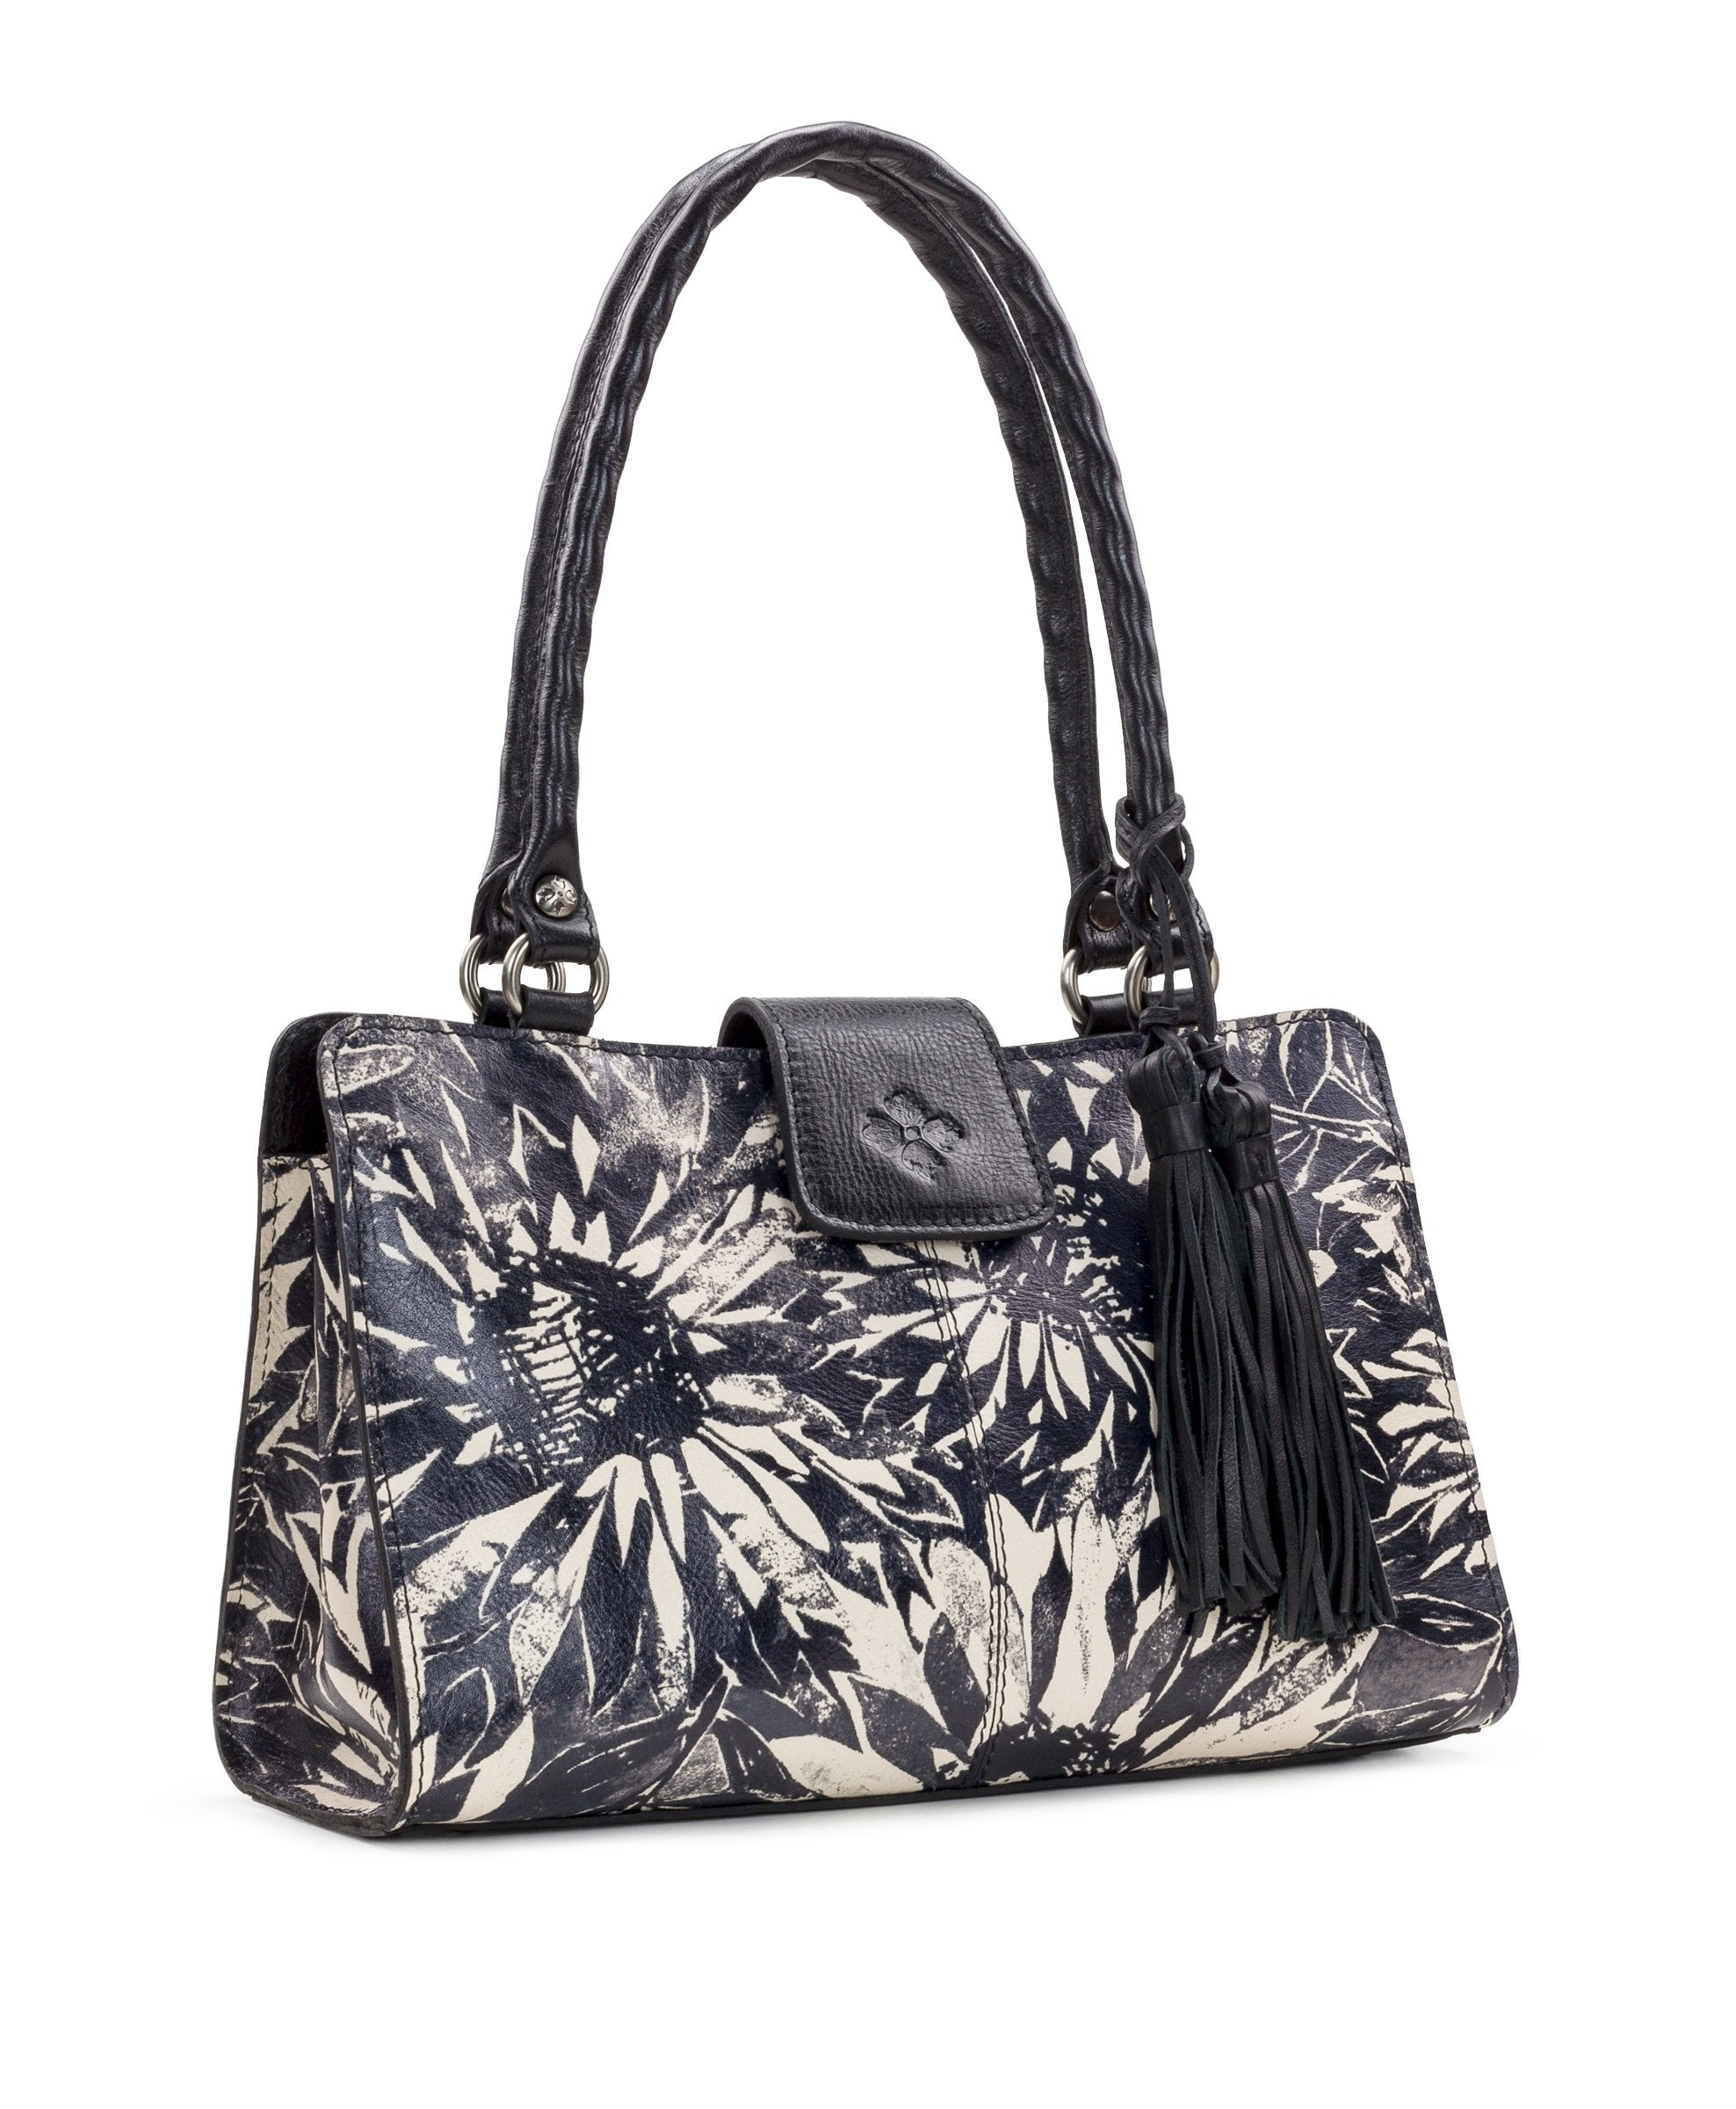 Rienzo Satchel - Sunflower Print 3